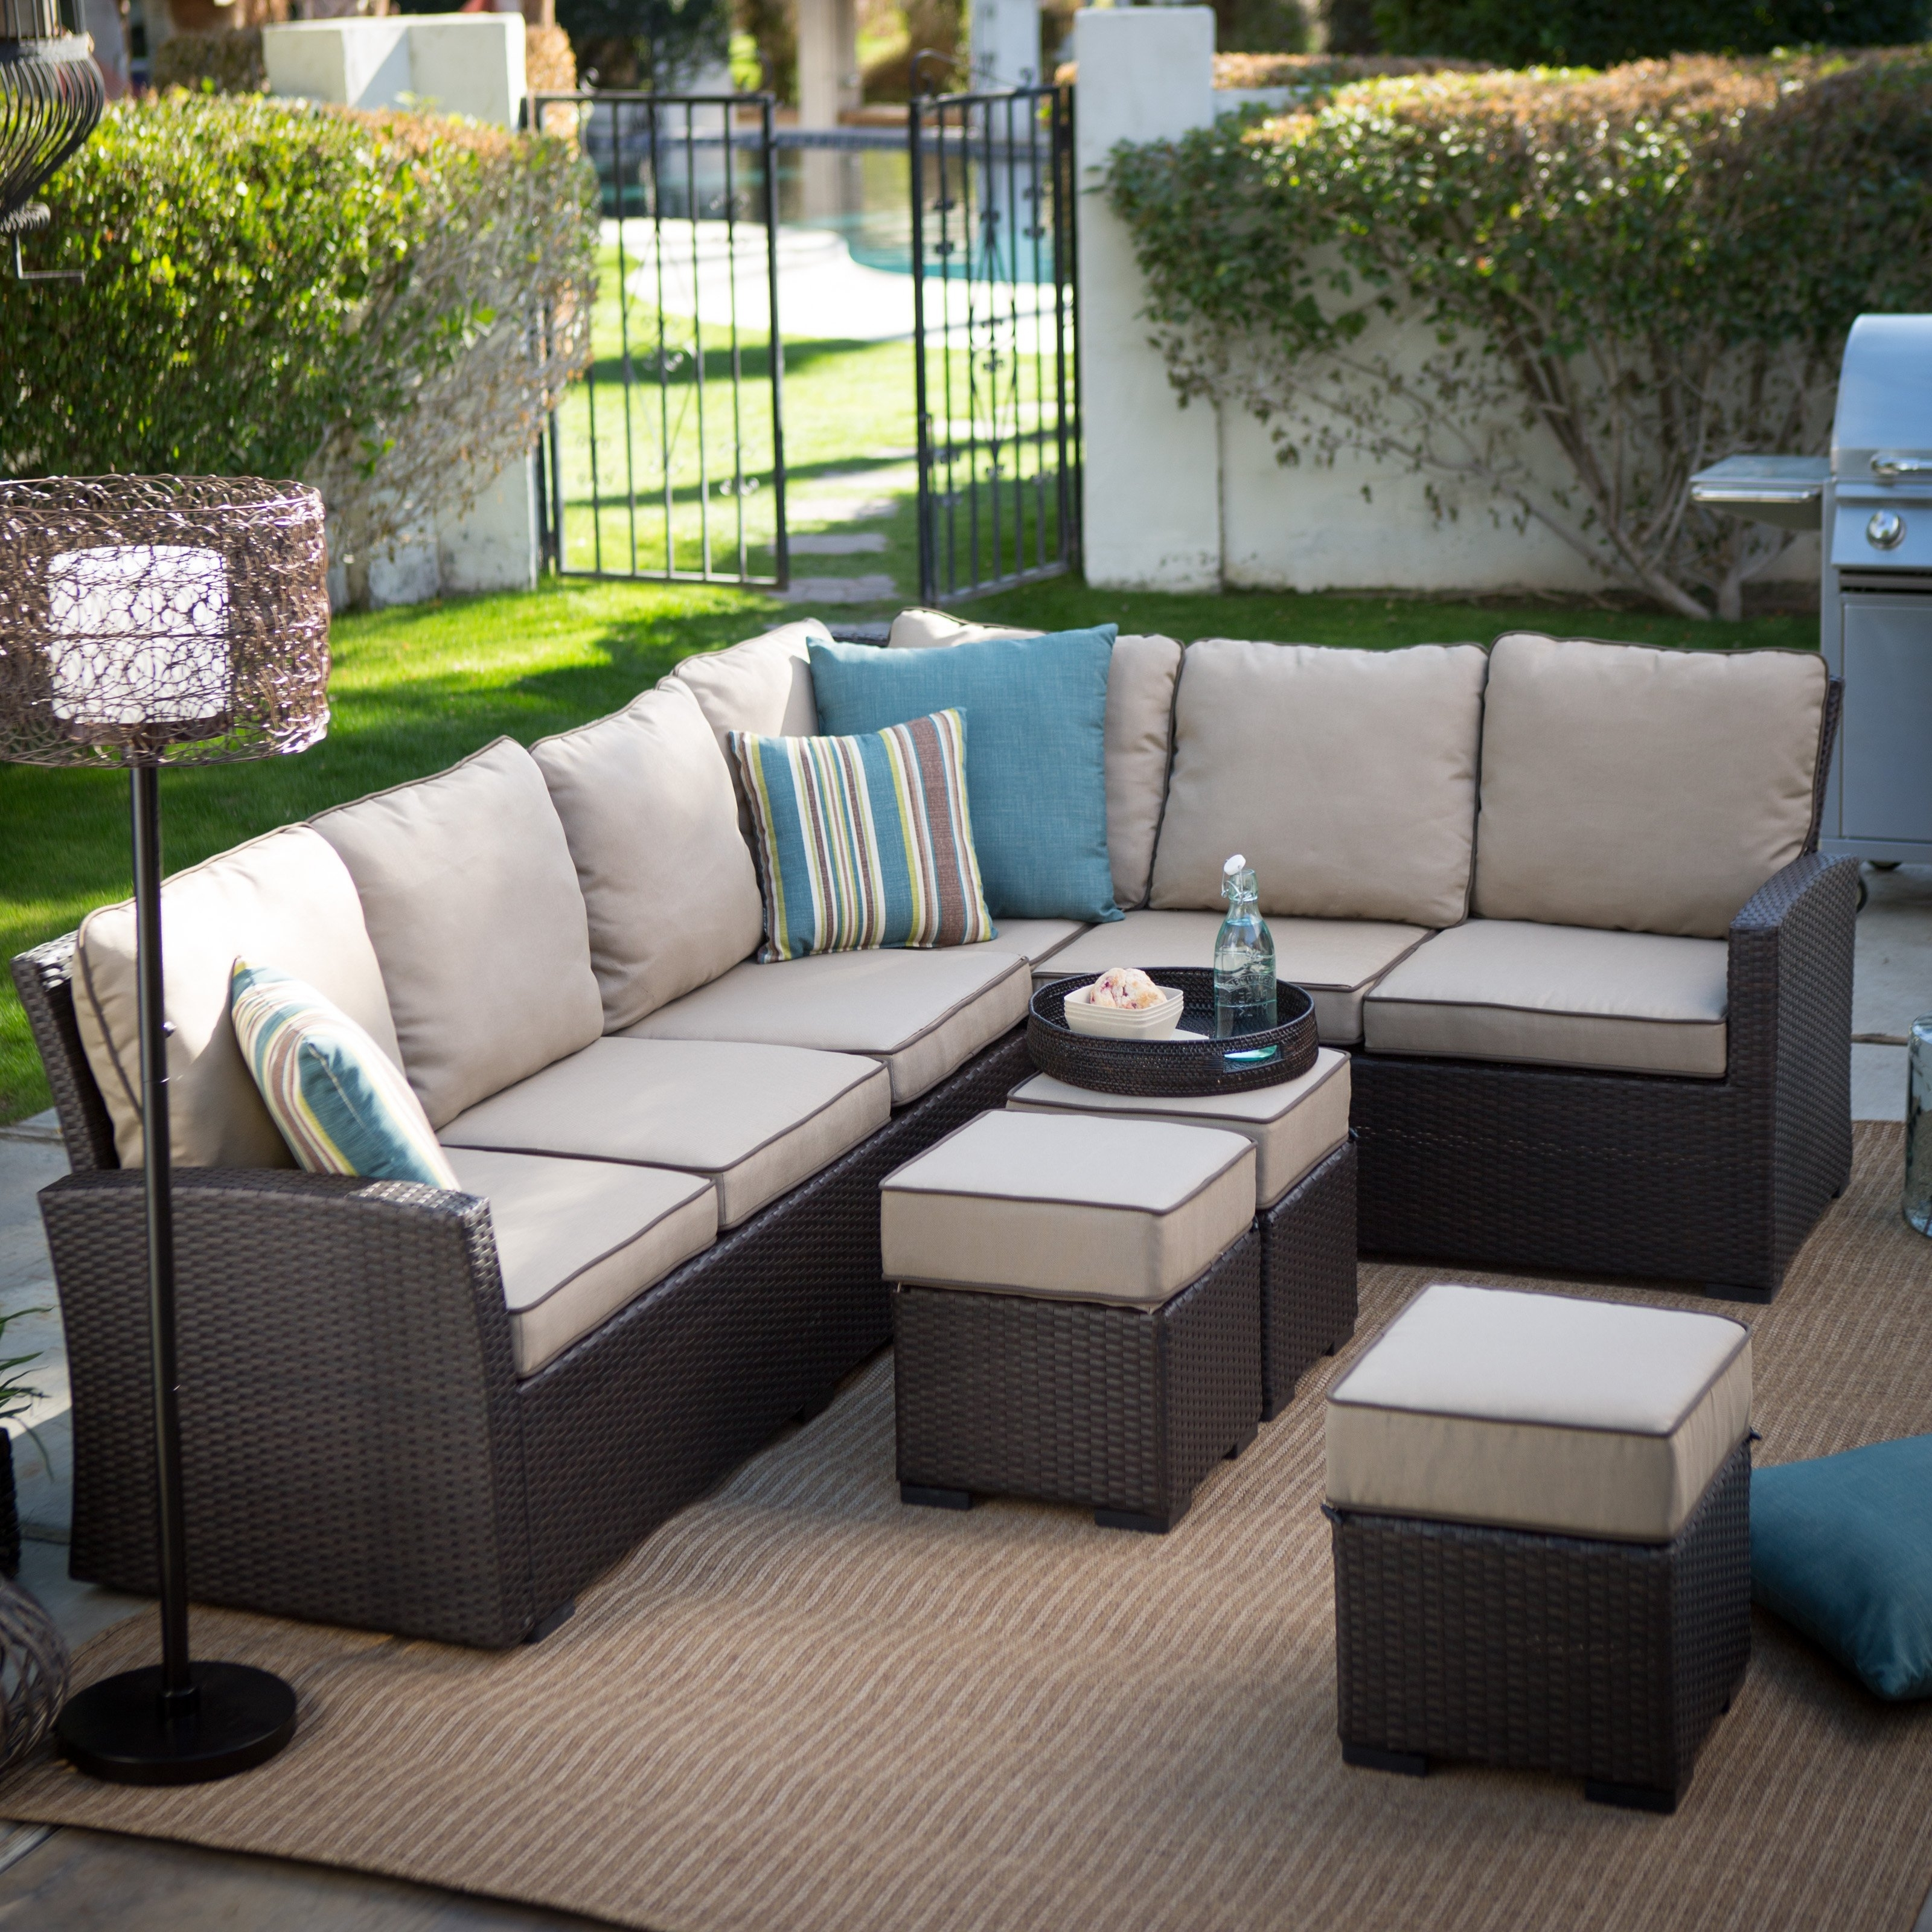 Well Liked Belham Living Monticello All Weather Outdoor Wicker Sofa Sectional In Patio Sectional Conversation Sets (View 11 of 20)